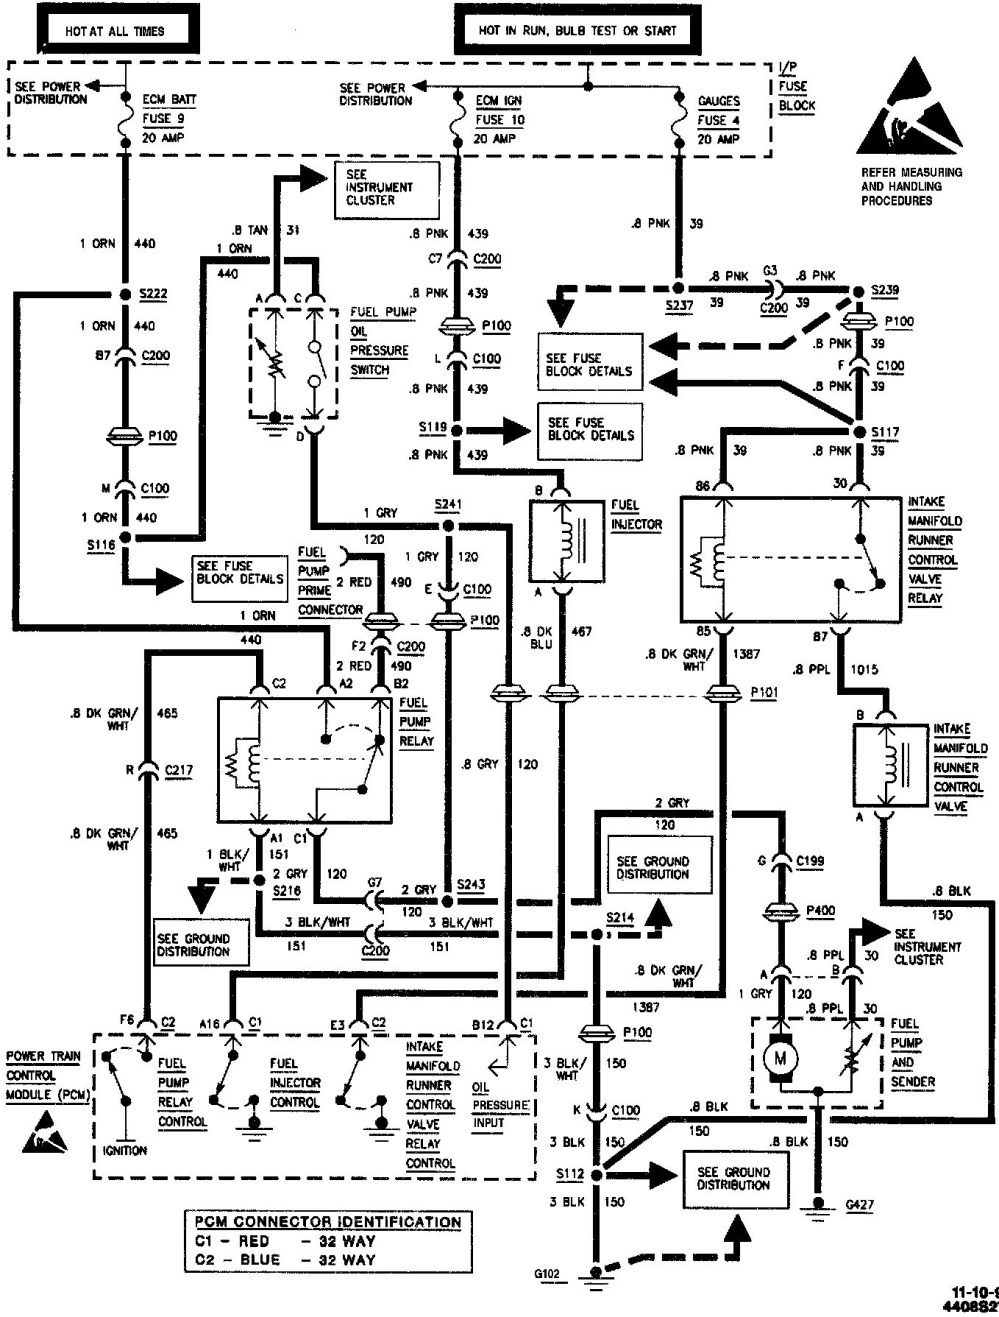 medium resolution of 1991 s10 steering column wiring diagram free download my wiring 1991 s10 steering column wiring diagram free download